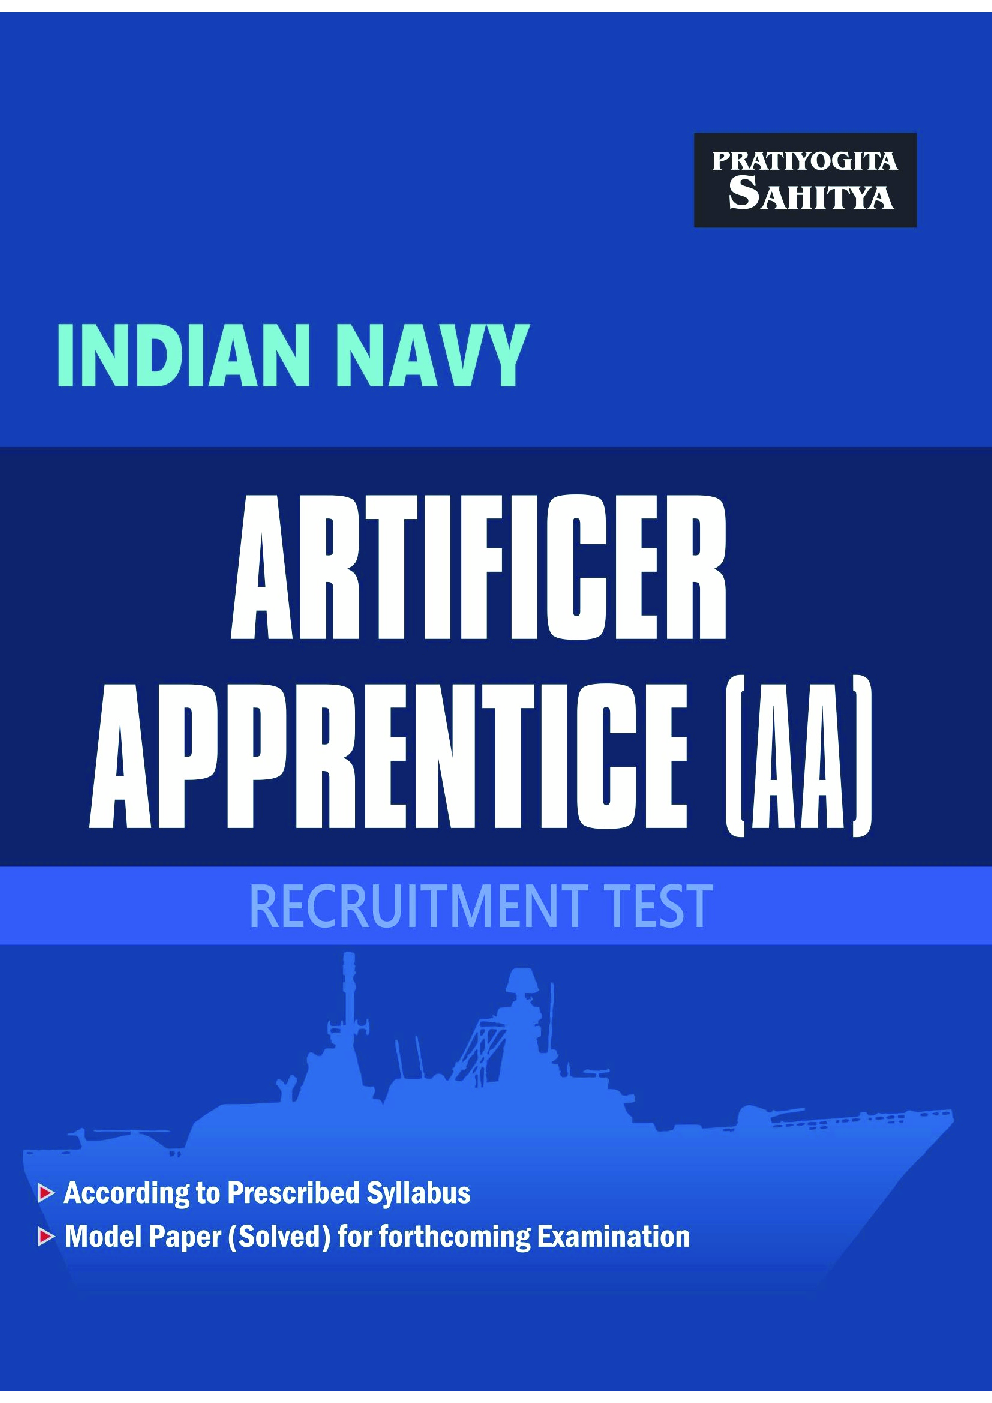 Indian Navy Artificer Apprentice (AA) - Page 1